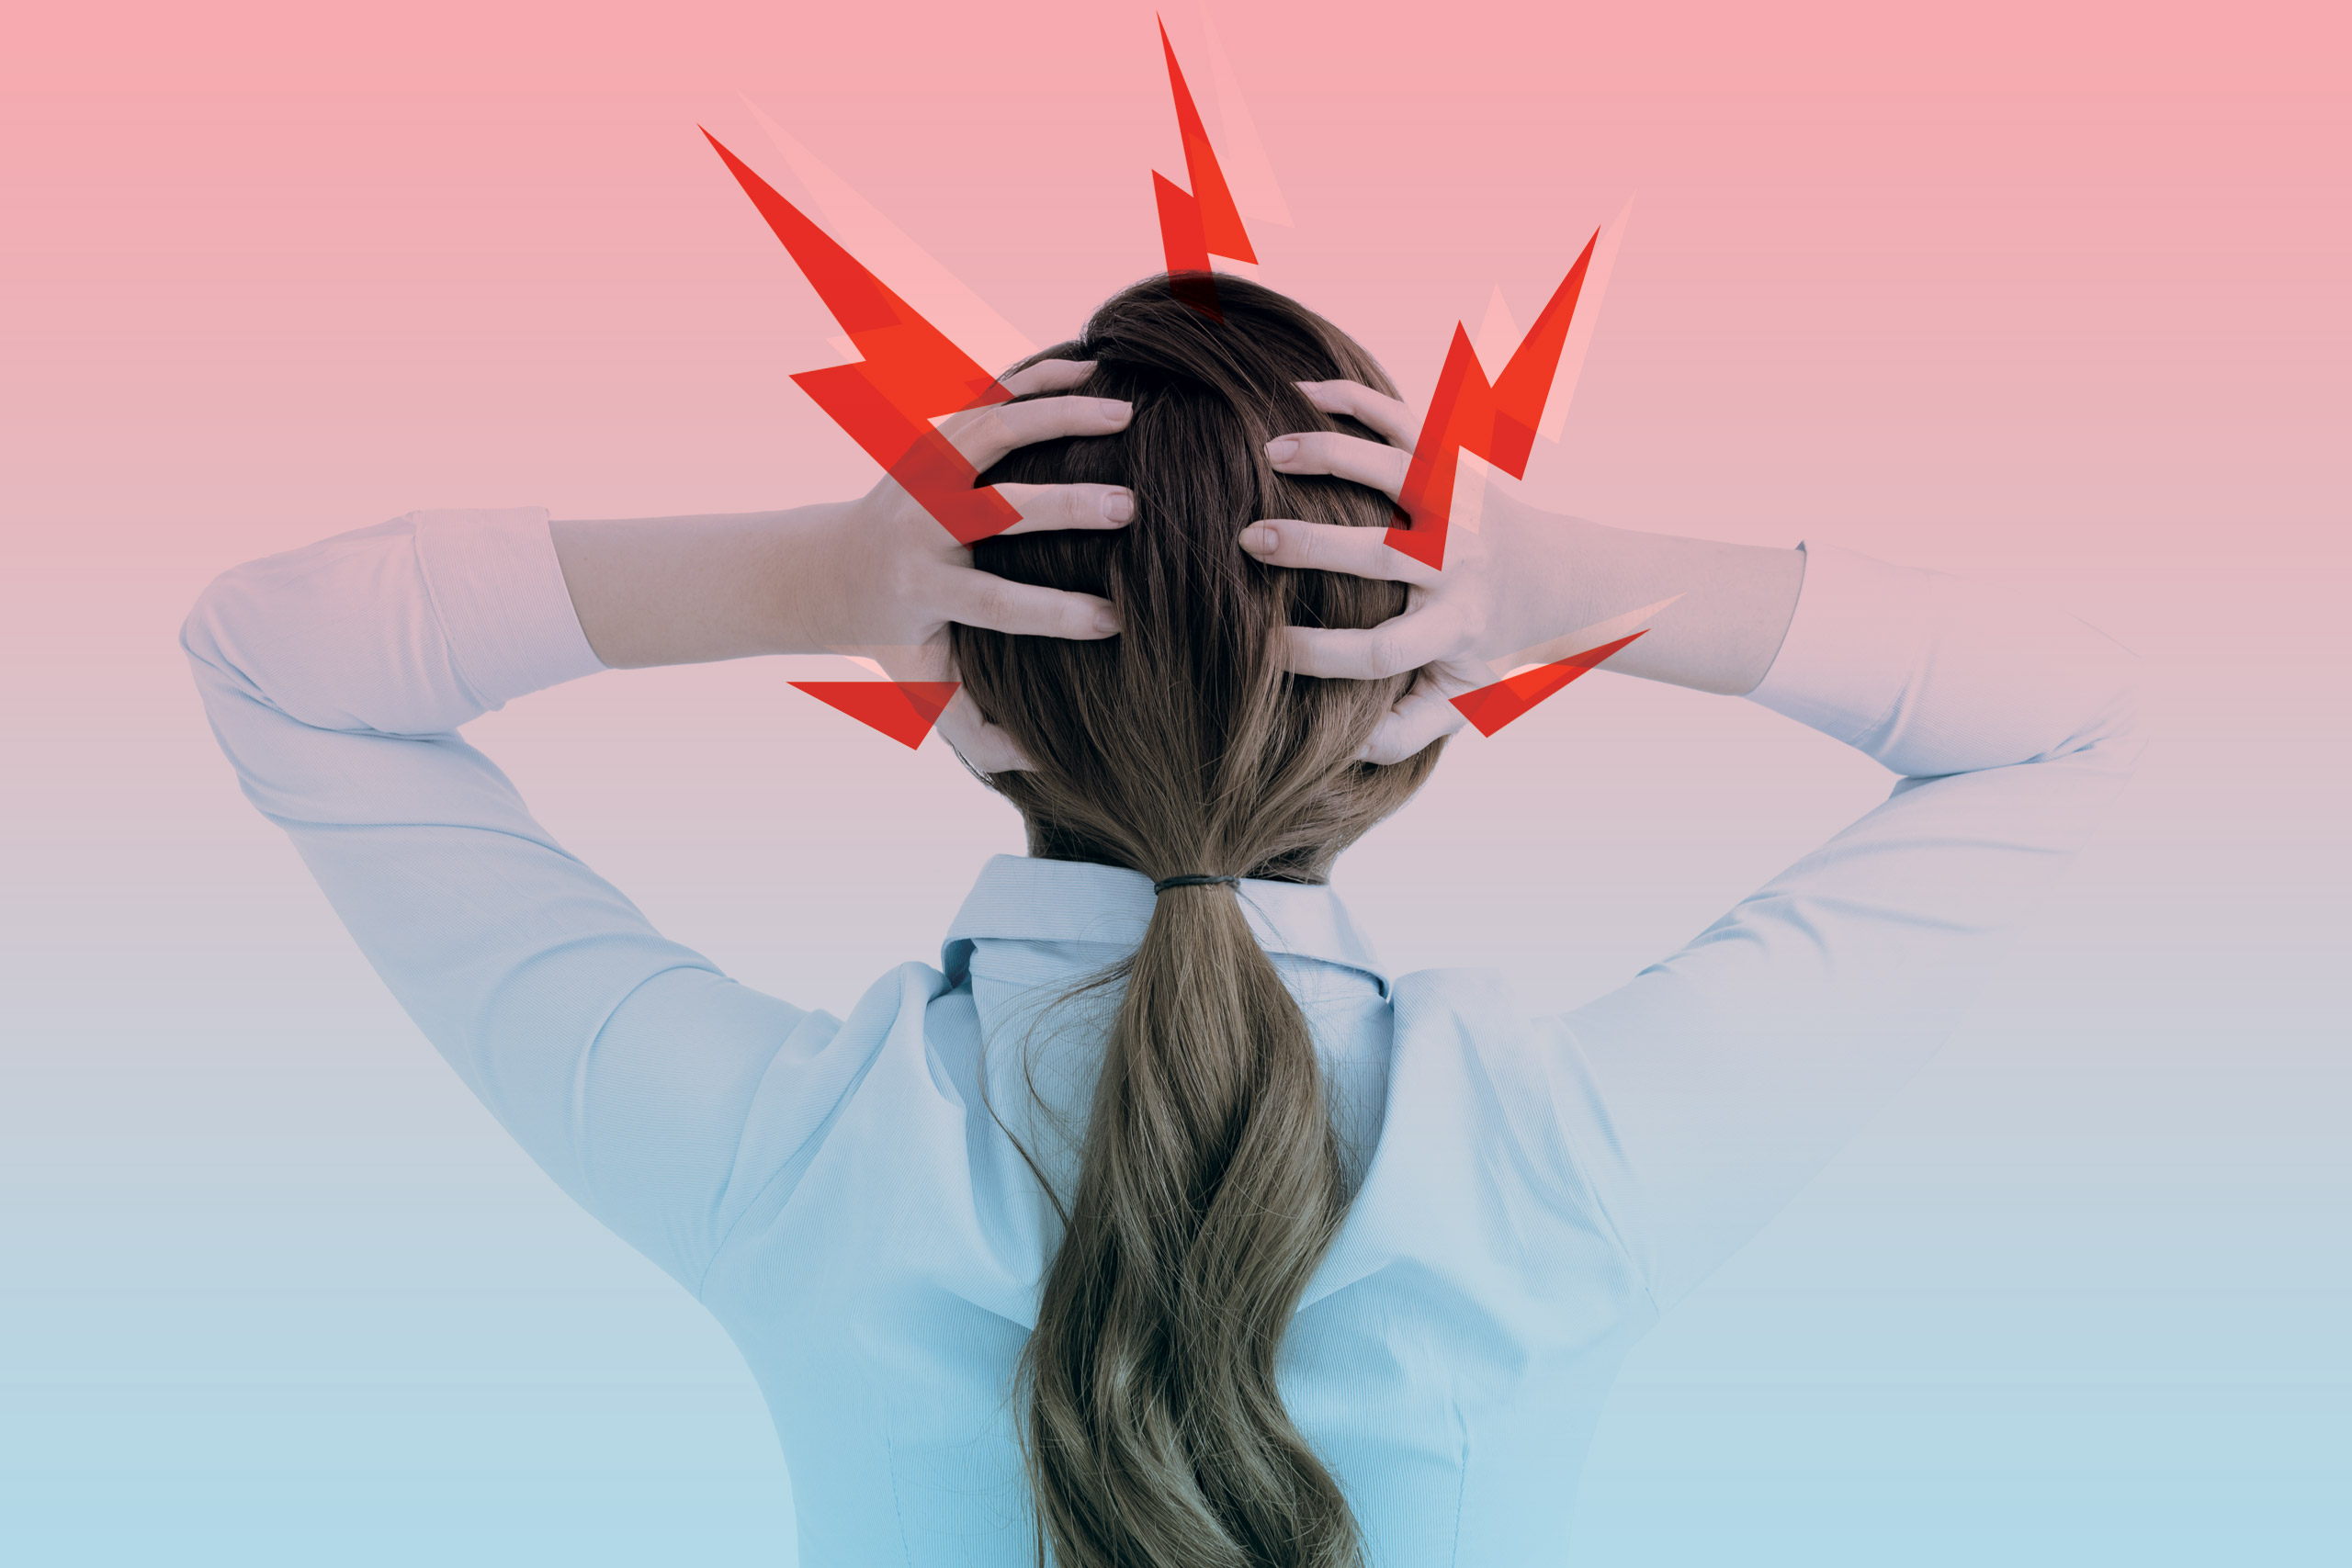 Migraines: Why Women Get Them and What Causes Migraines | Time